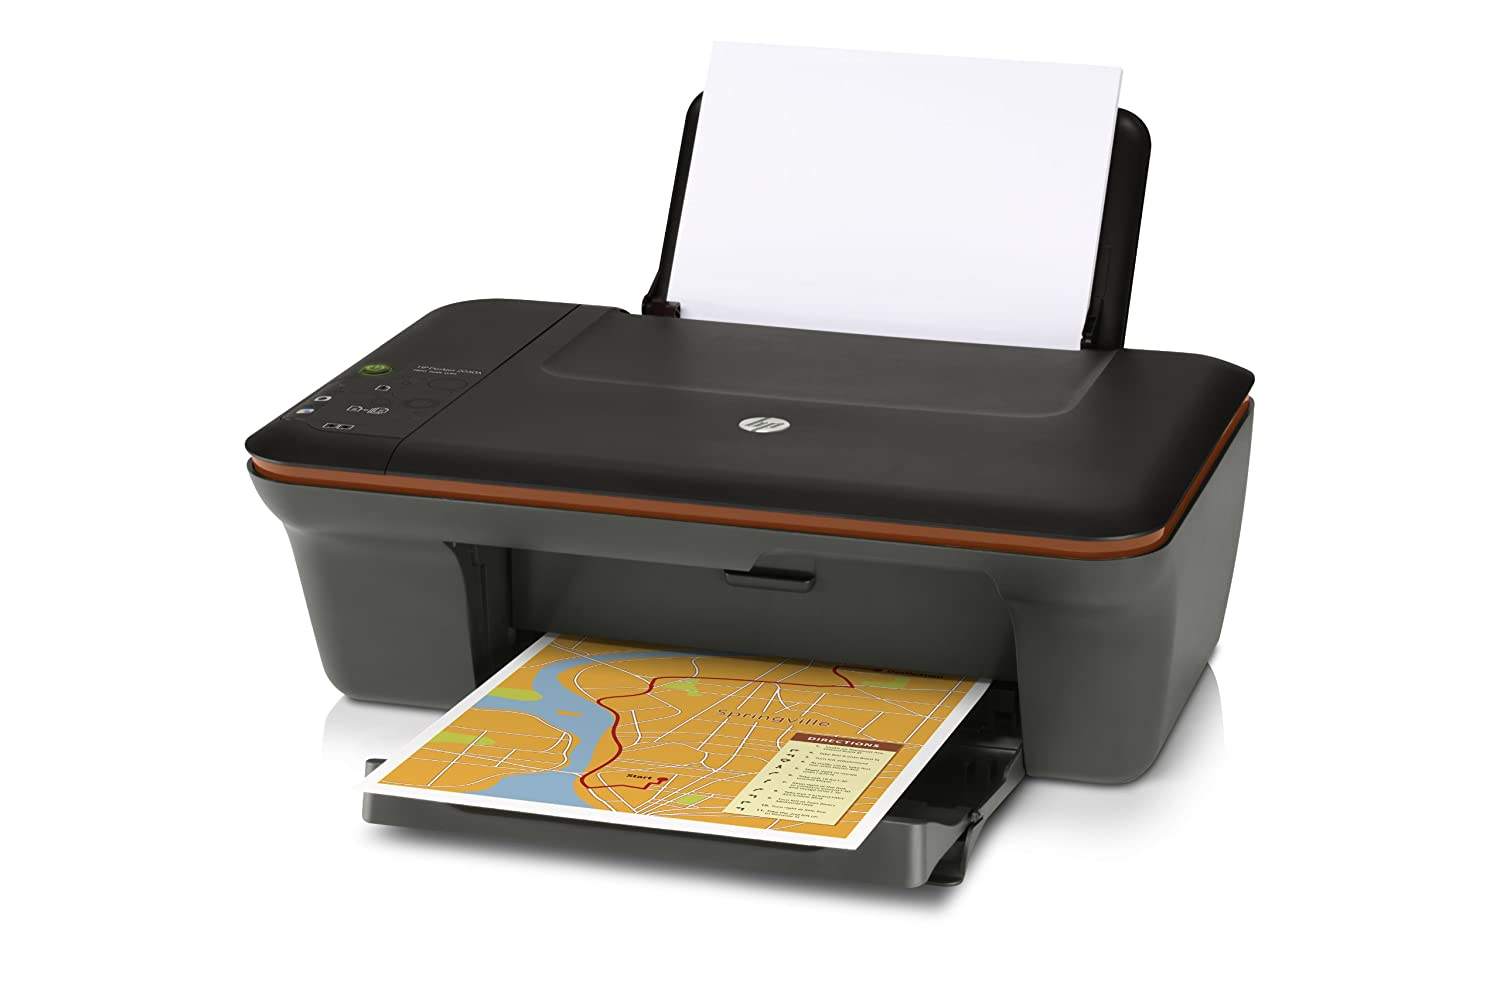 hp deskjet case study Learn about hp laptops, pc desktops, printers, accessories and more at the official hp® website.